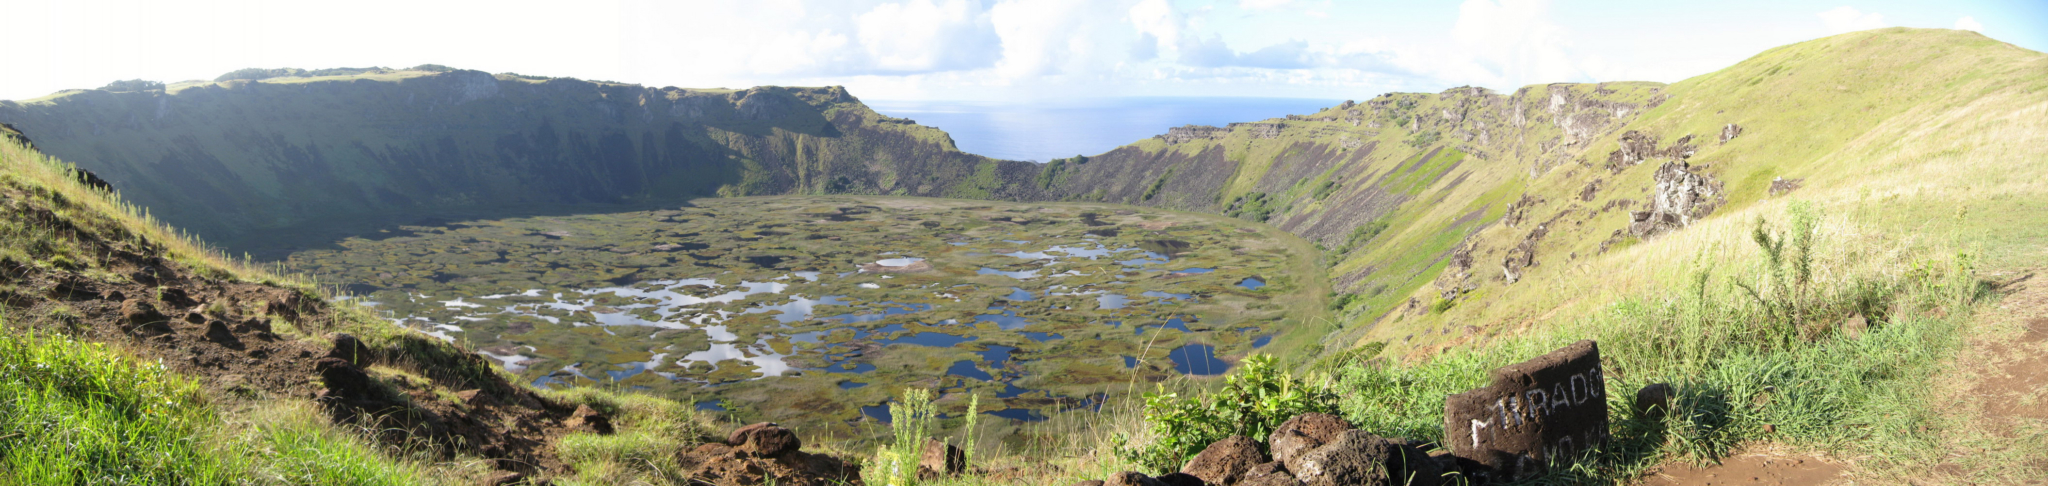 The Rano Kau crater in Rapa Nui